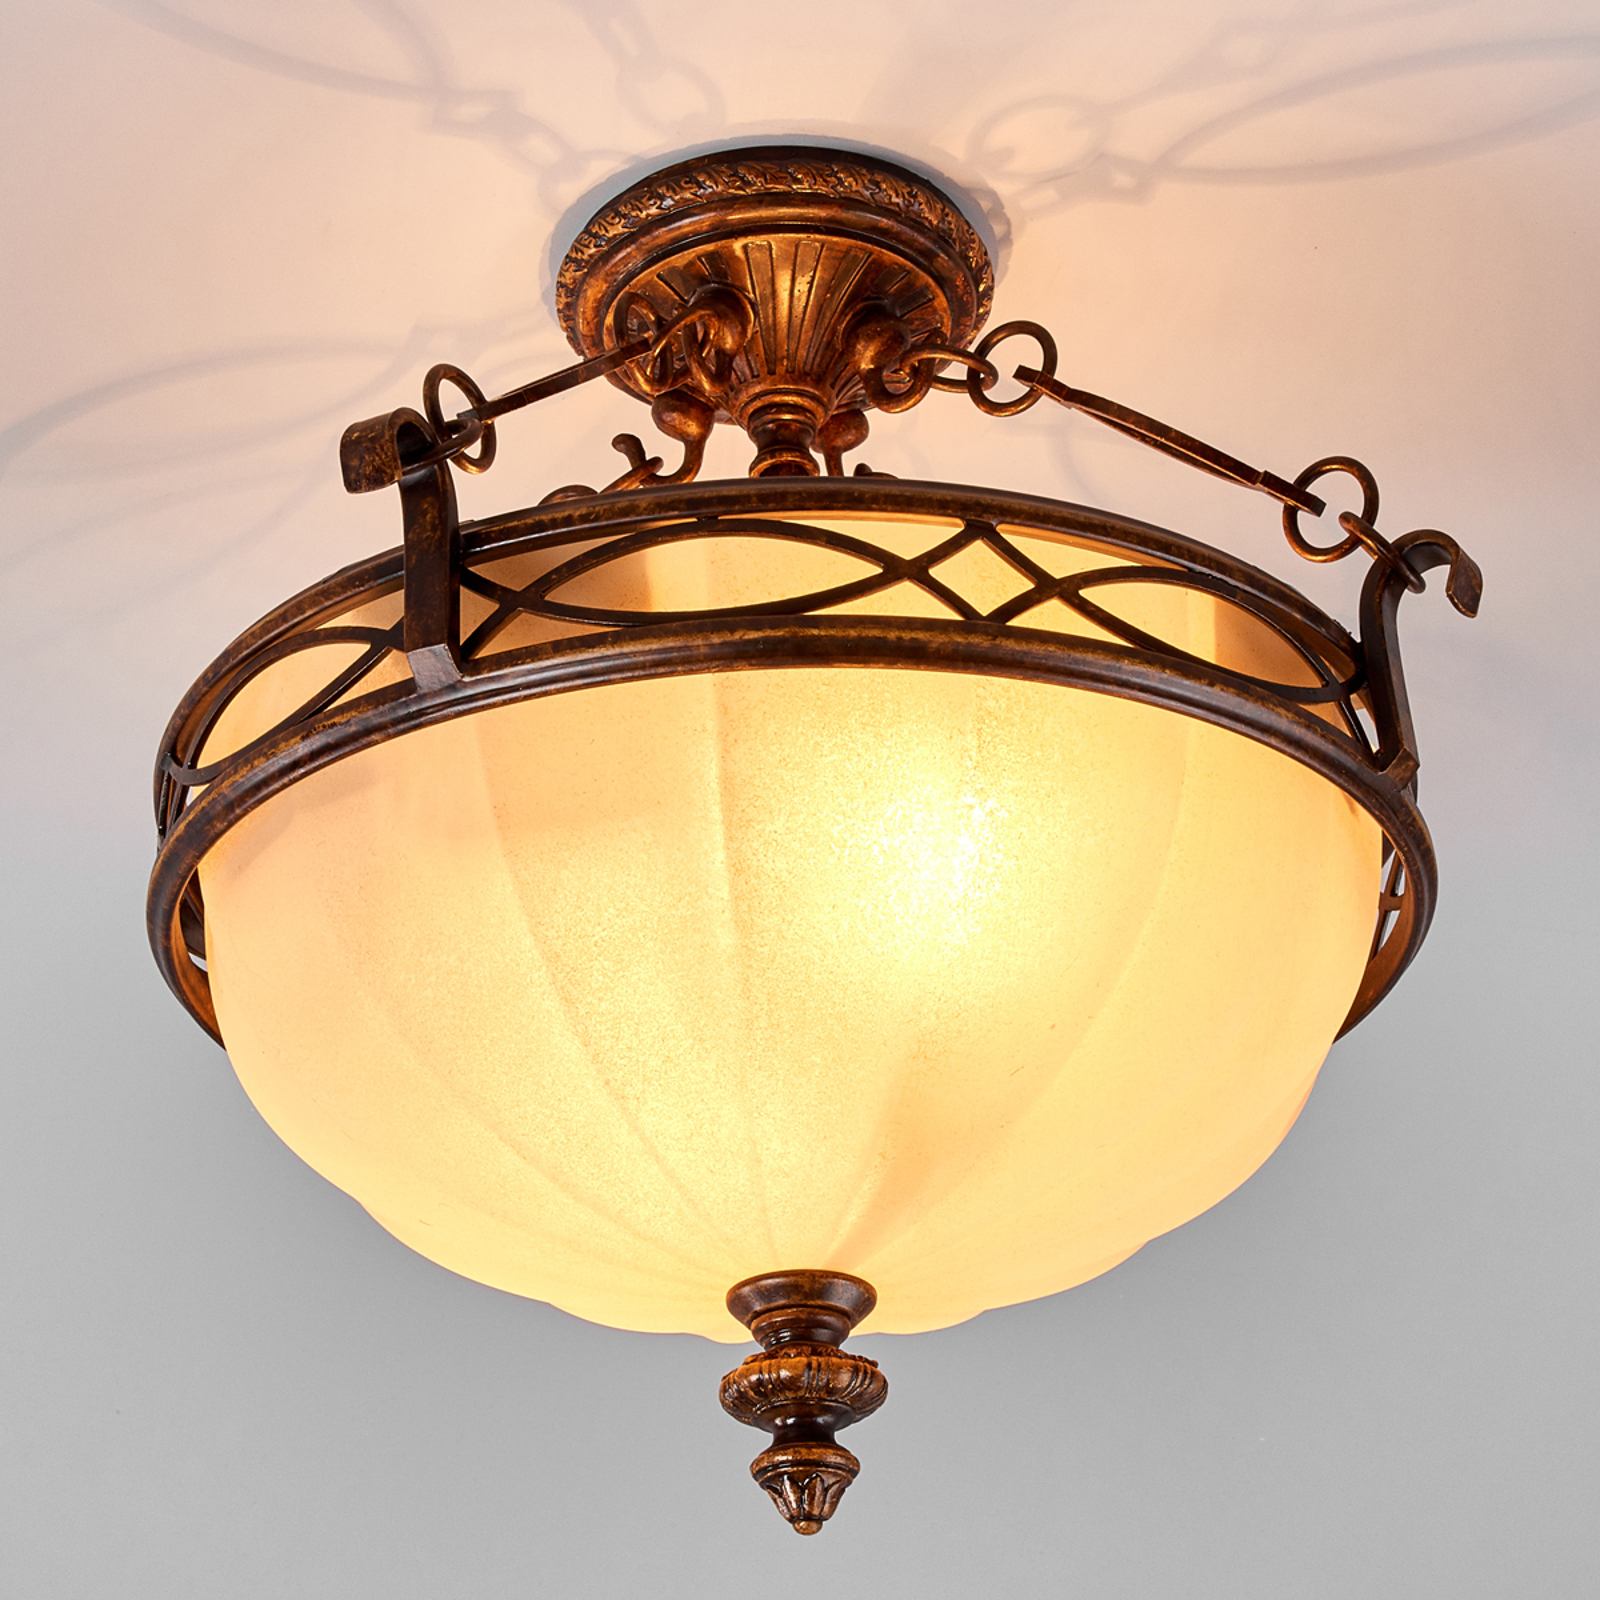 Drawing Room Ceiling Light Classic_3048238_1